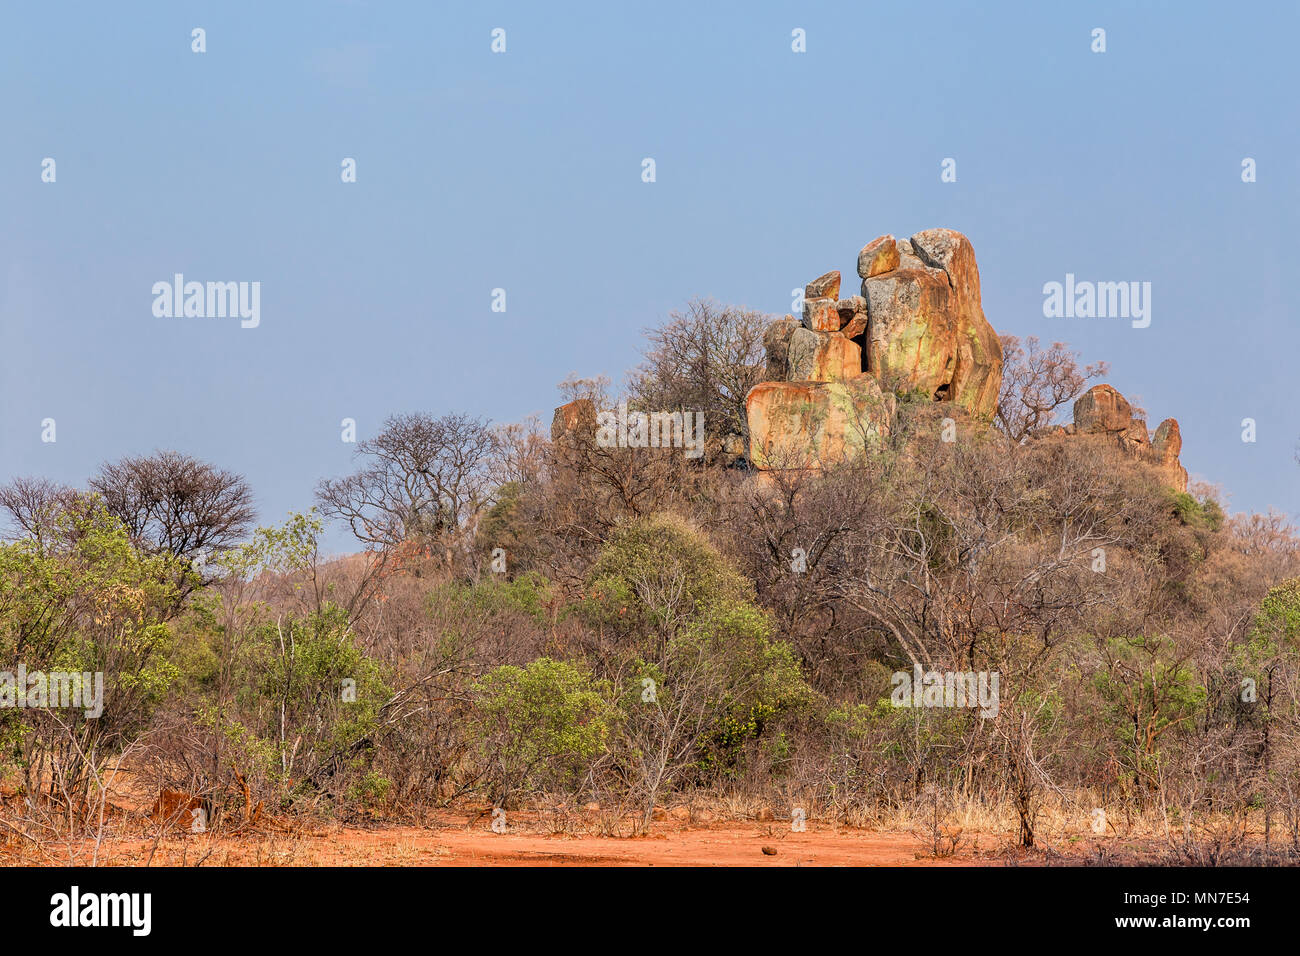 Balancing rocks in Matobo National Park, Zimbabwe, formed by millions of years of weathering. - Stock Image